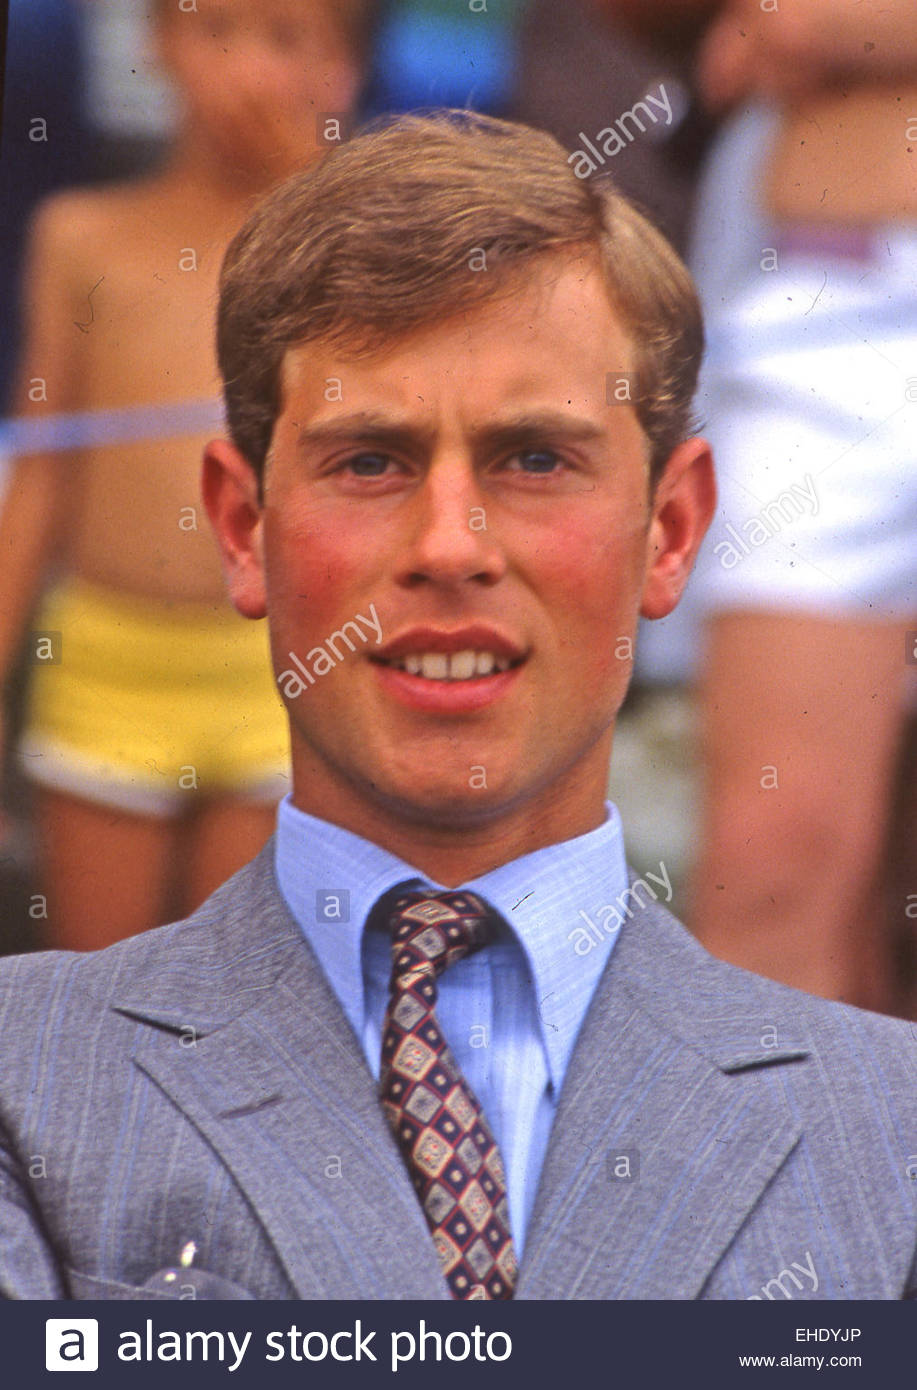 prince edward young - Google Search | Young prince, Prince ...  Edward Earl Of Wessex Young